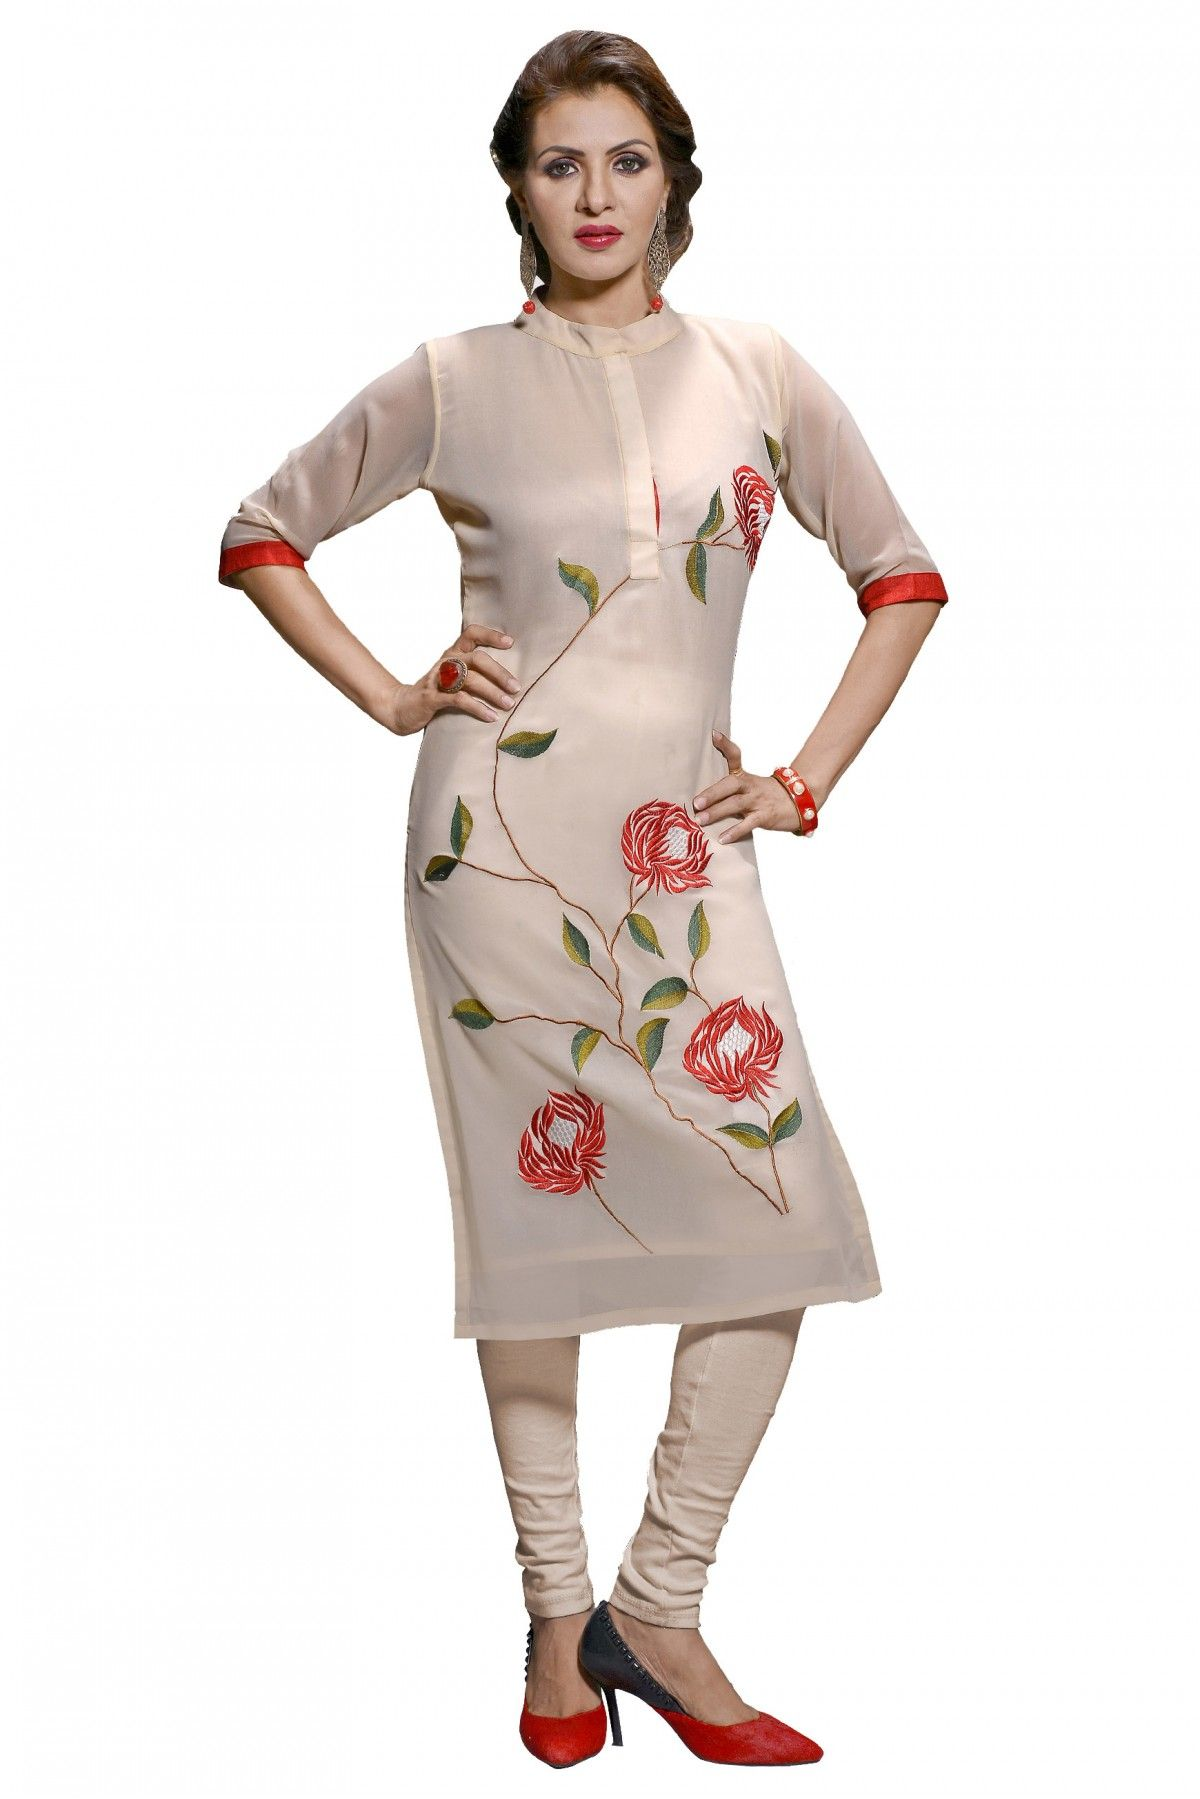 db68e837d4 This lovely kurti strives in the color off white fabricated in georgette.  Its gorgeous front gold design makes it extraordinary and a total modern  party ou.